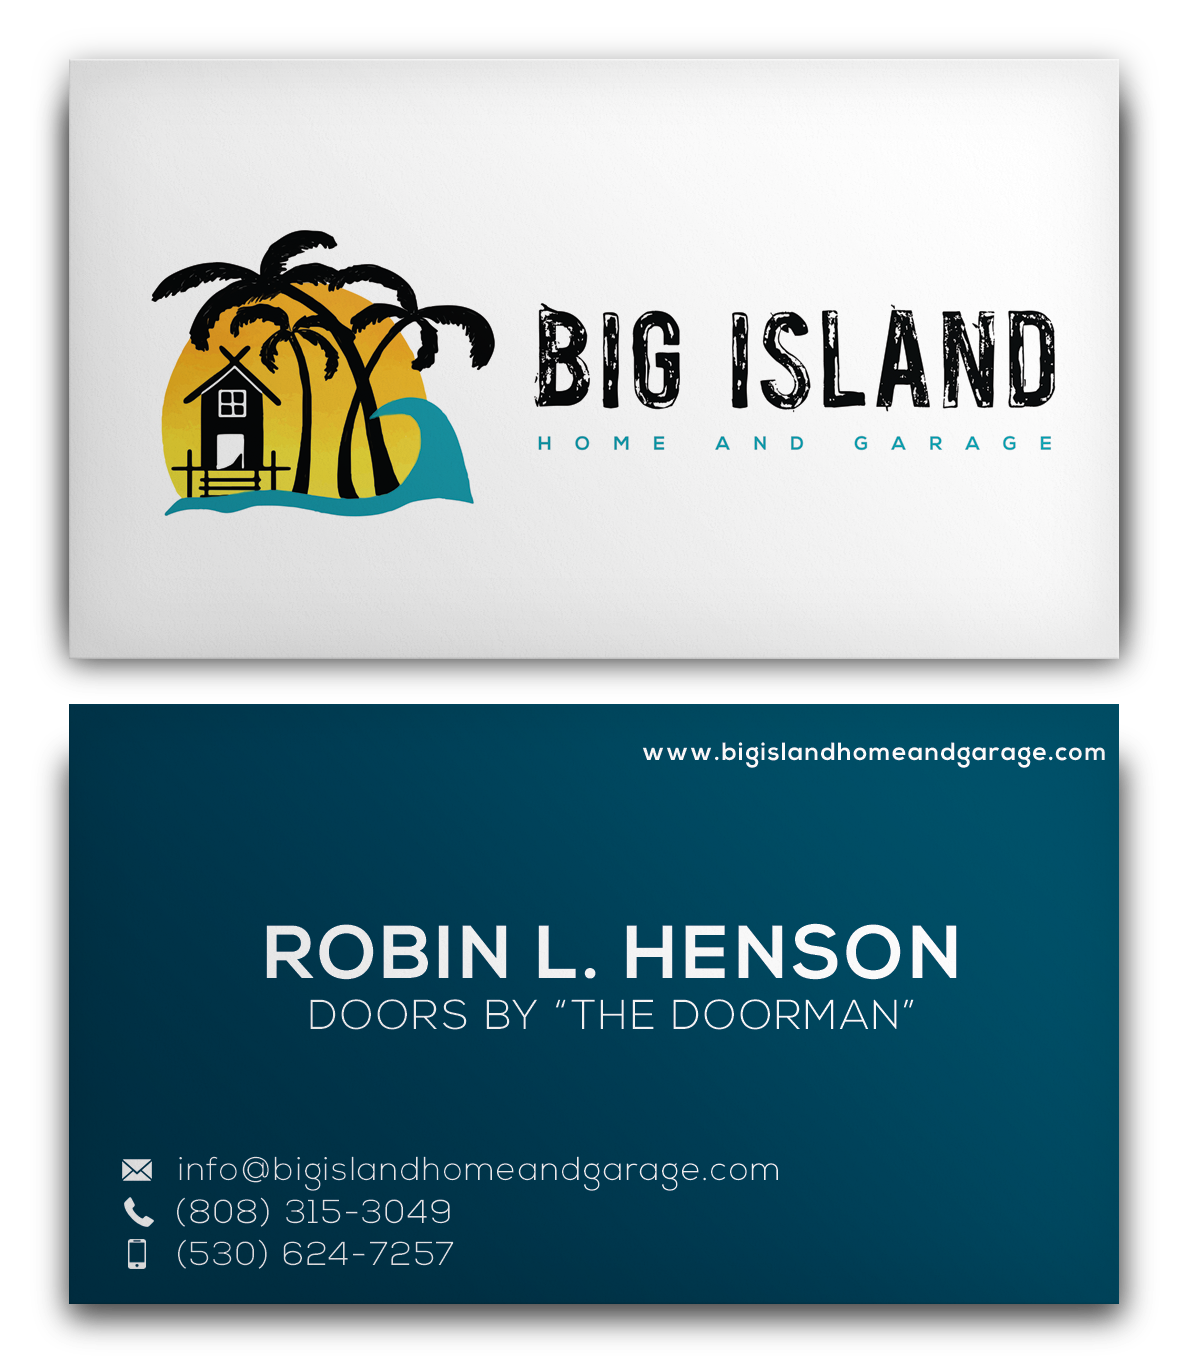 Design And Print Business Cards At Home Online Print Shop Printing Services For Business